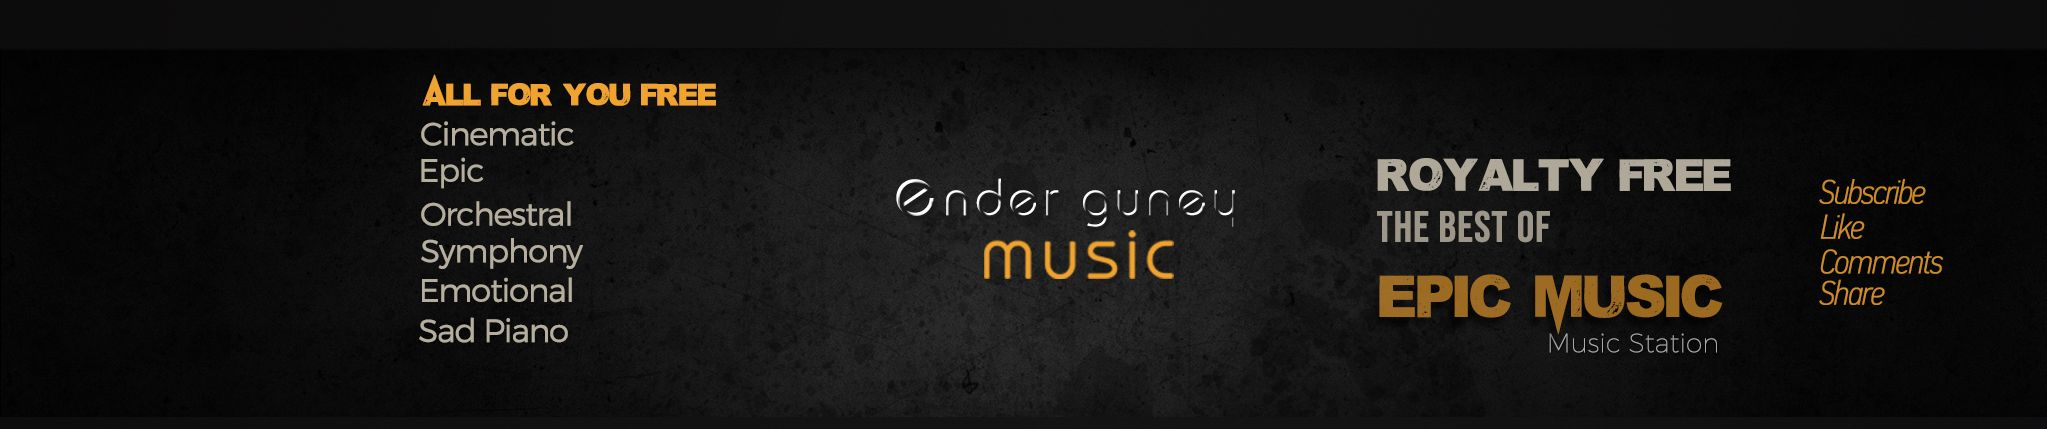 Ender Guney Music | Free Listening on SoundCloud